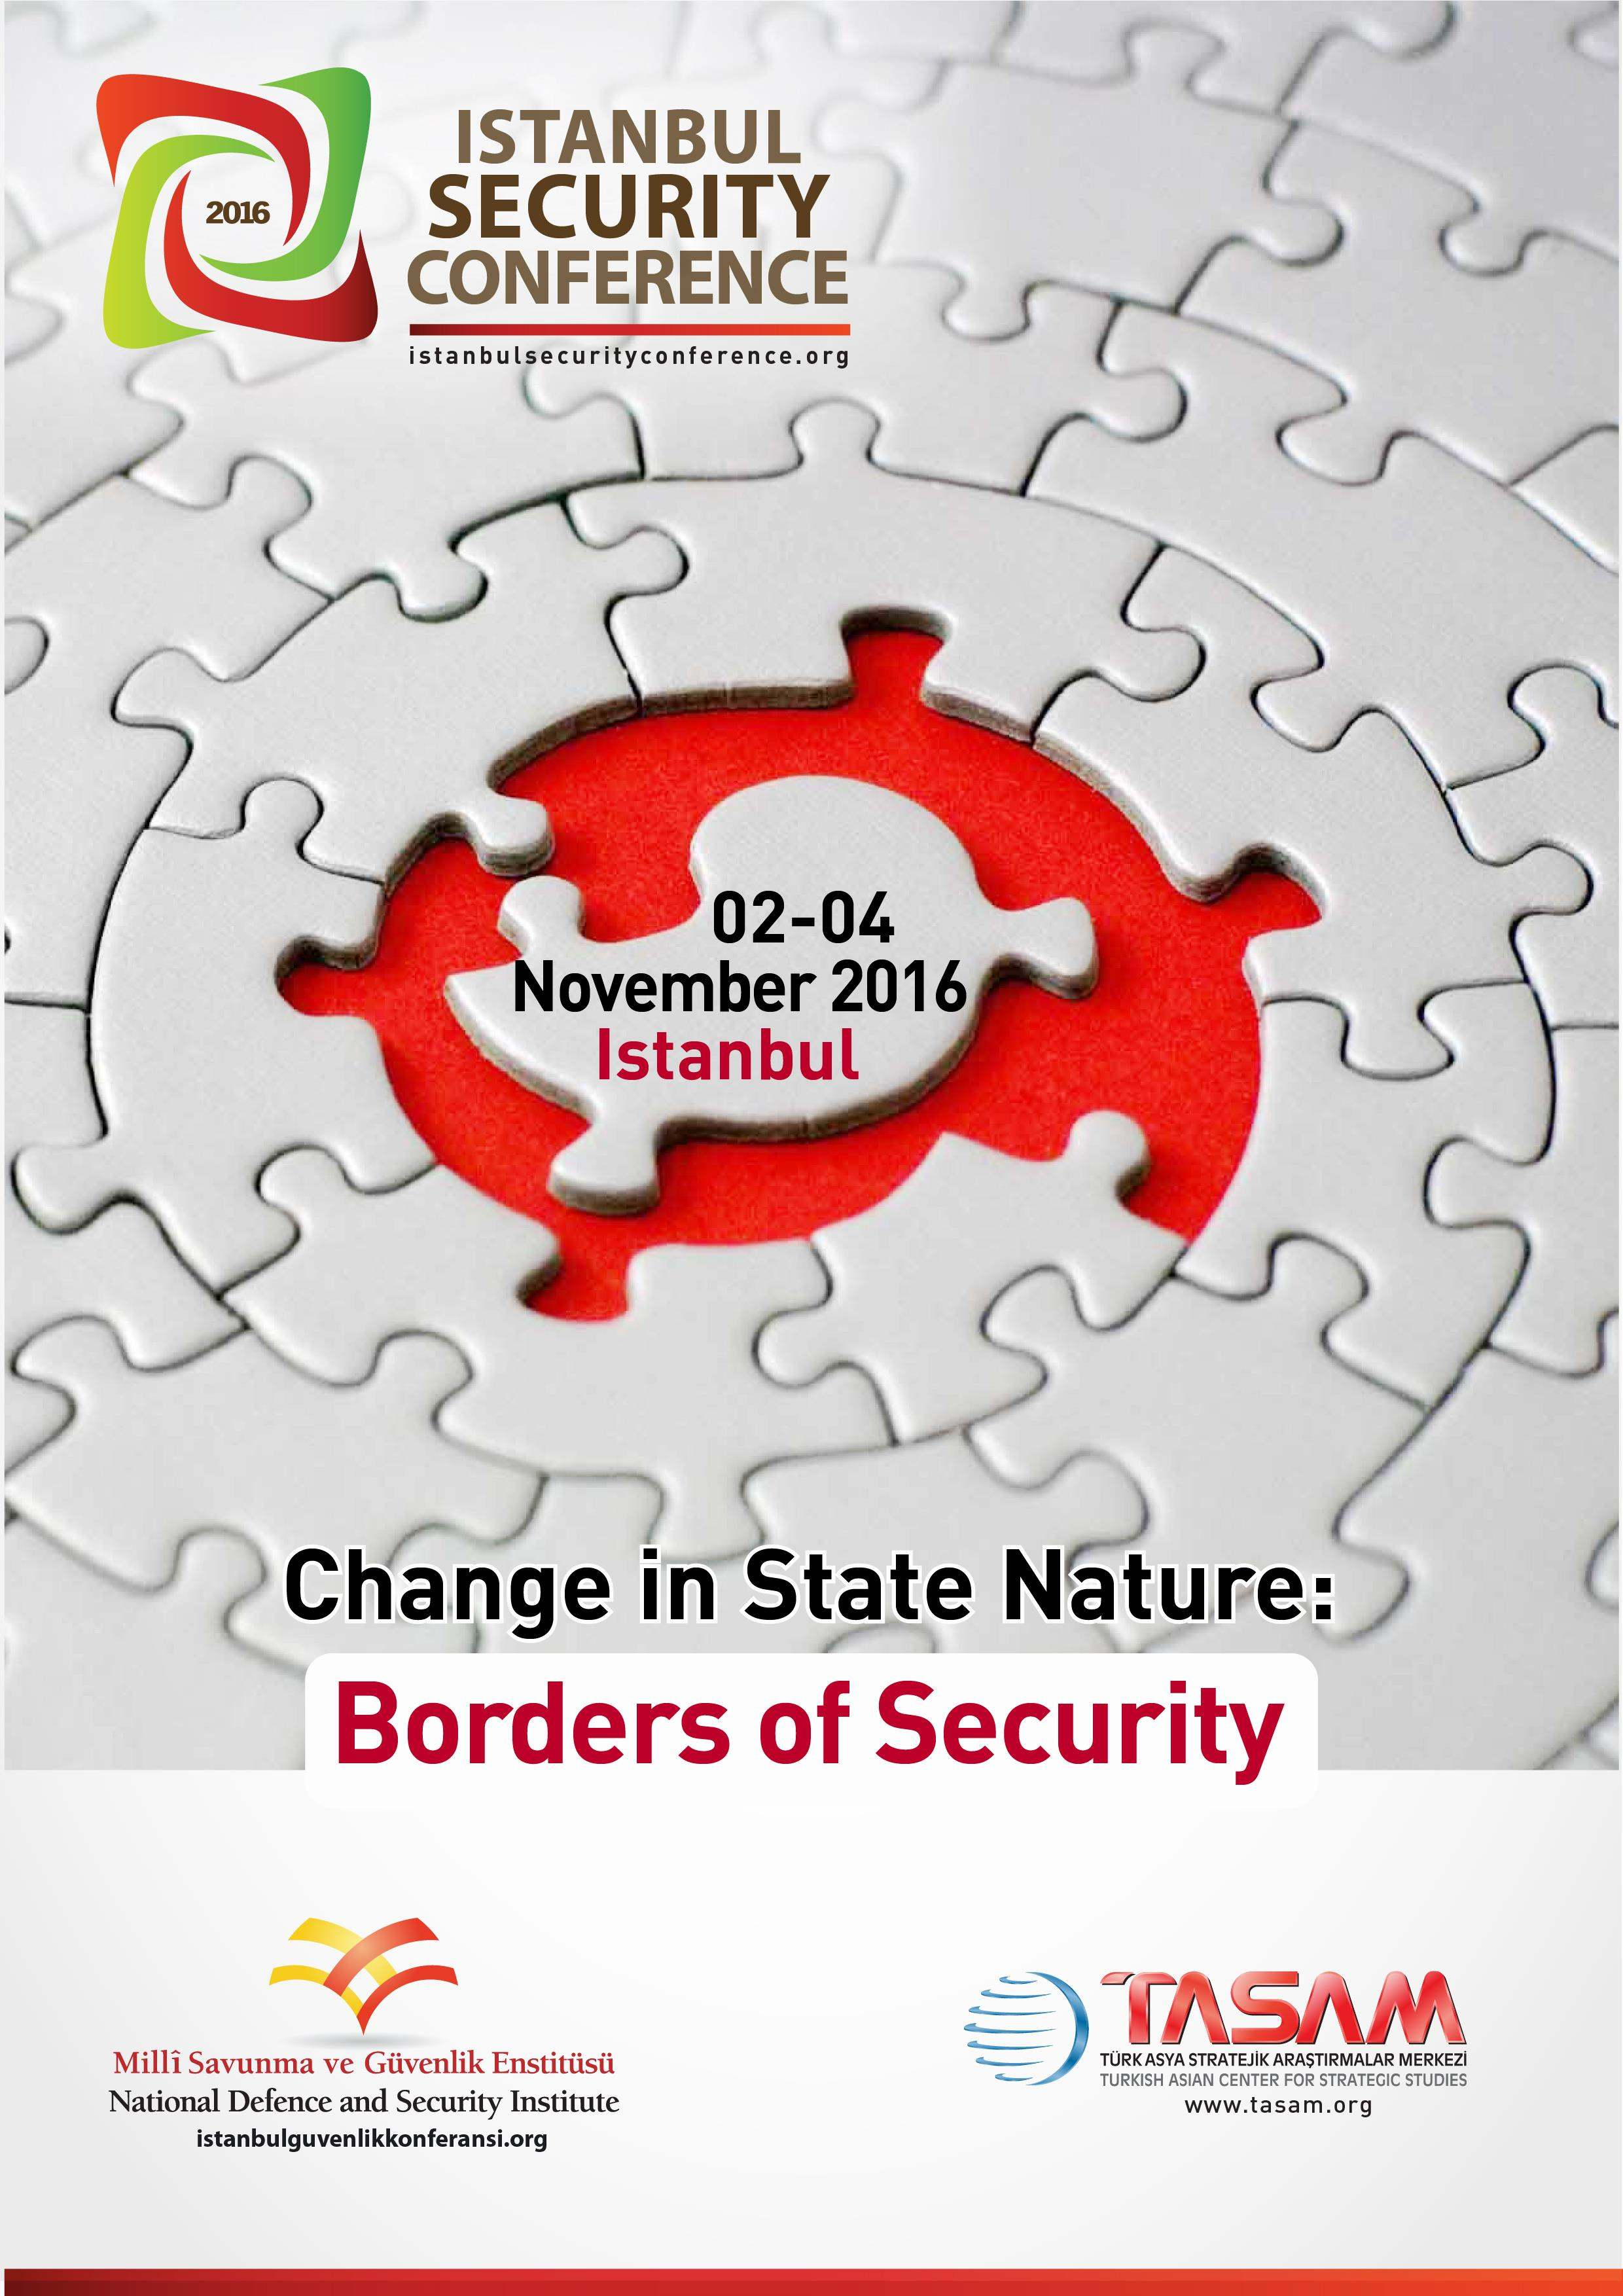 Istanbul Security Conference 2016